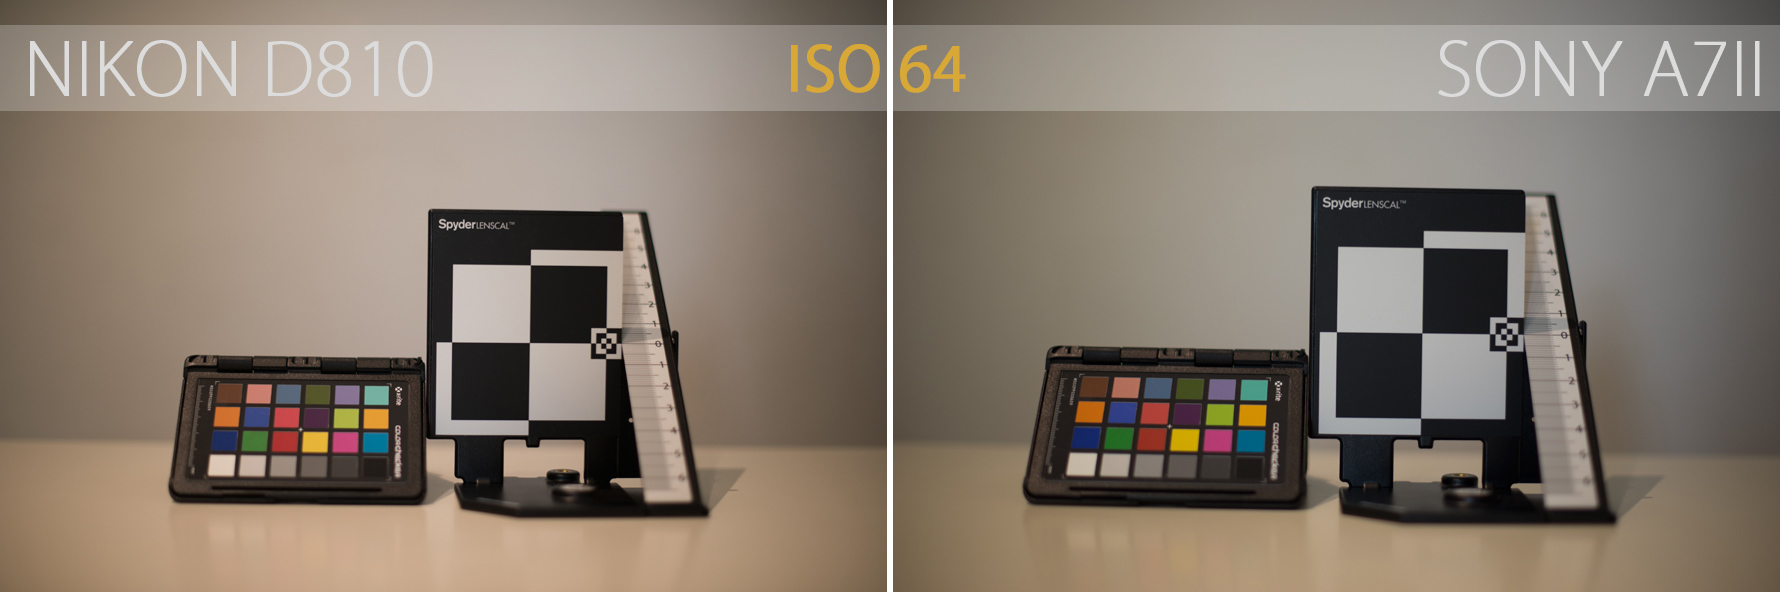 comparison between Nikon D810 and Sony a7II to ISO 64